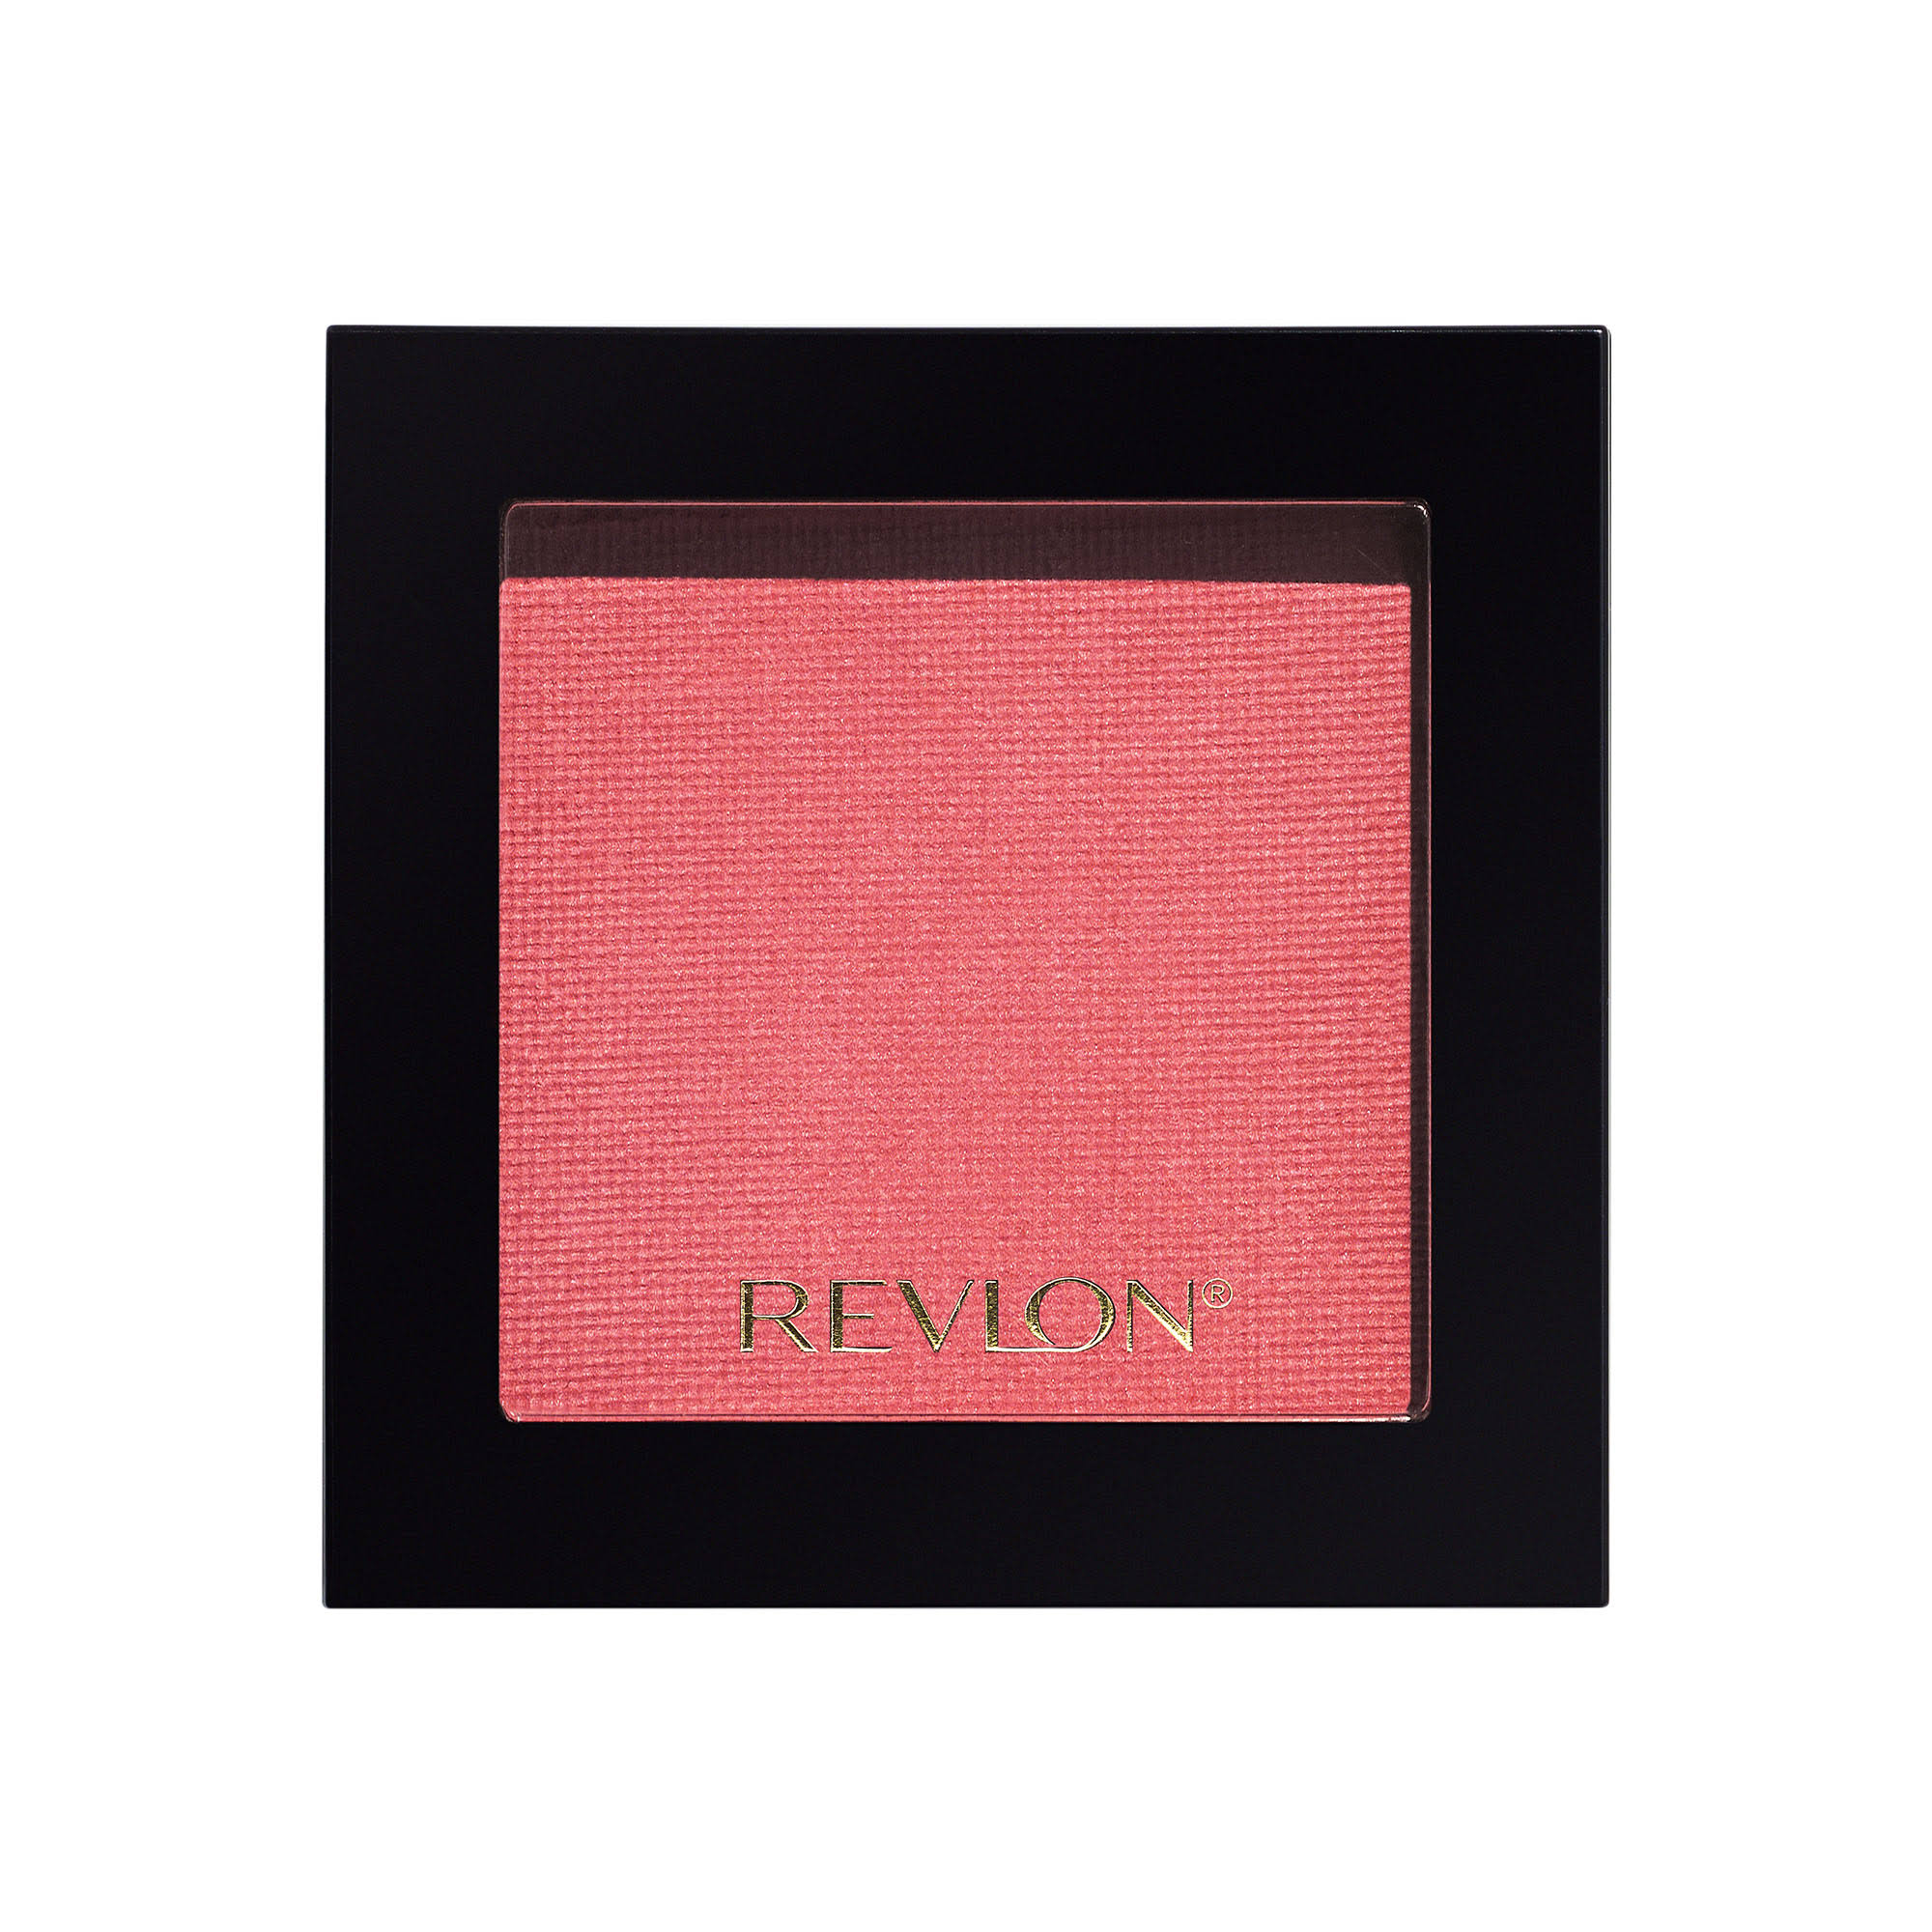 Revlon Powder Blush - Very Berry, 0.17oz